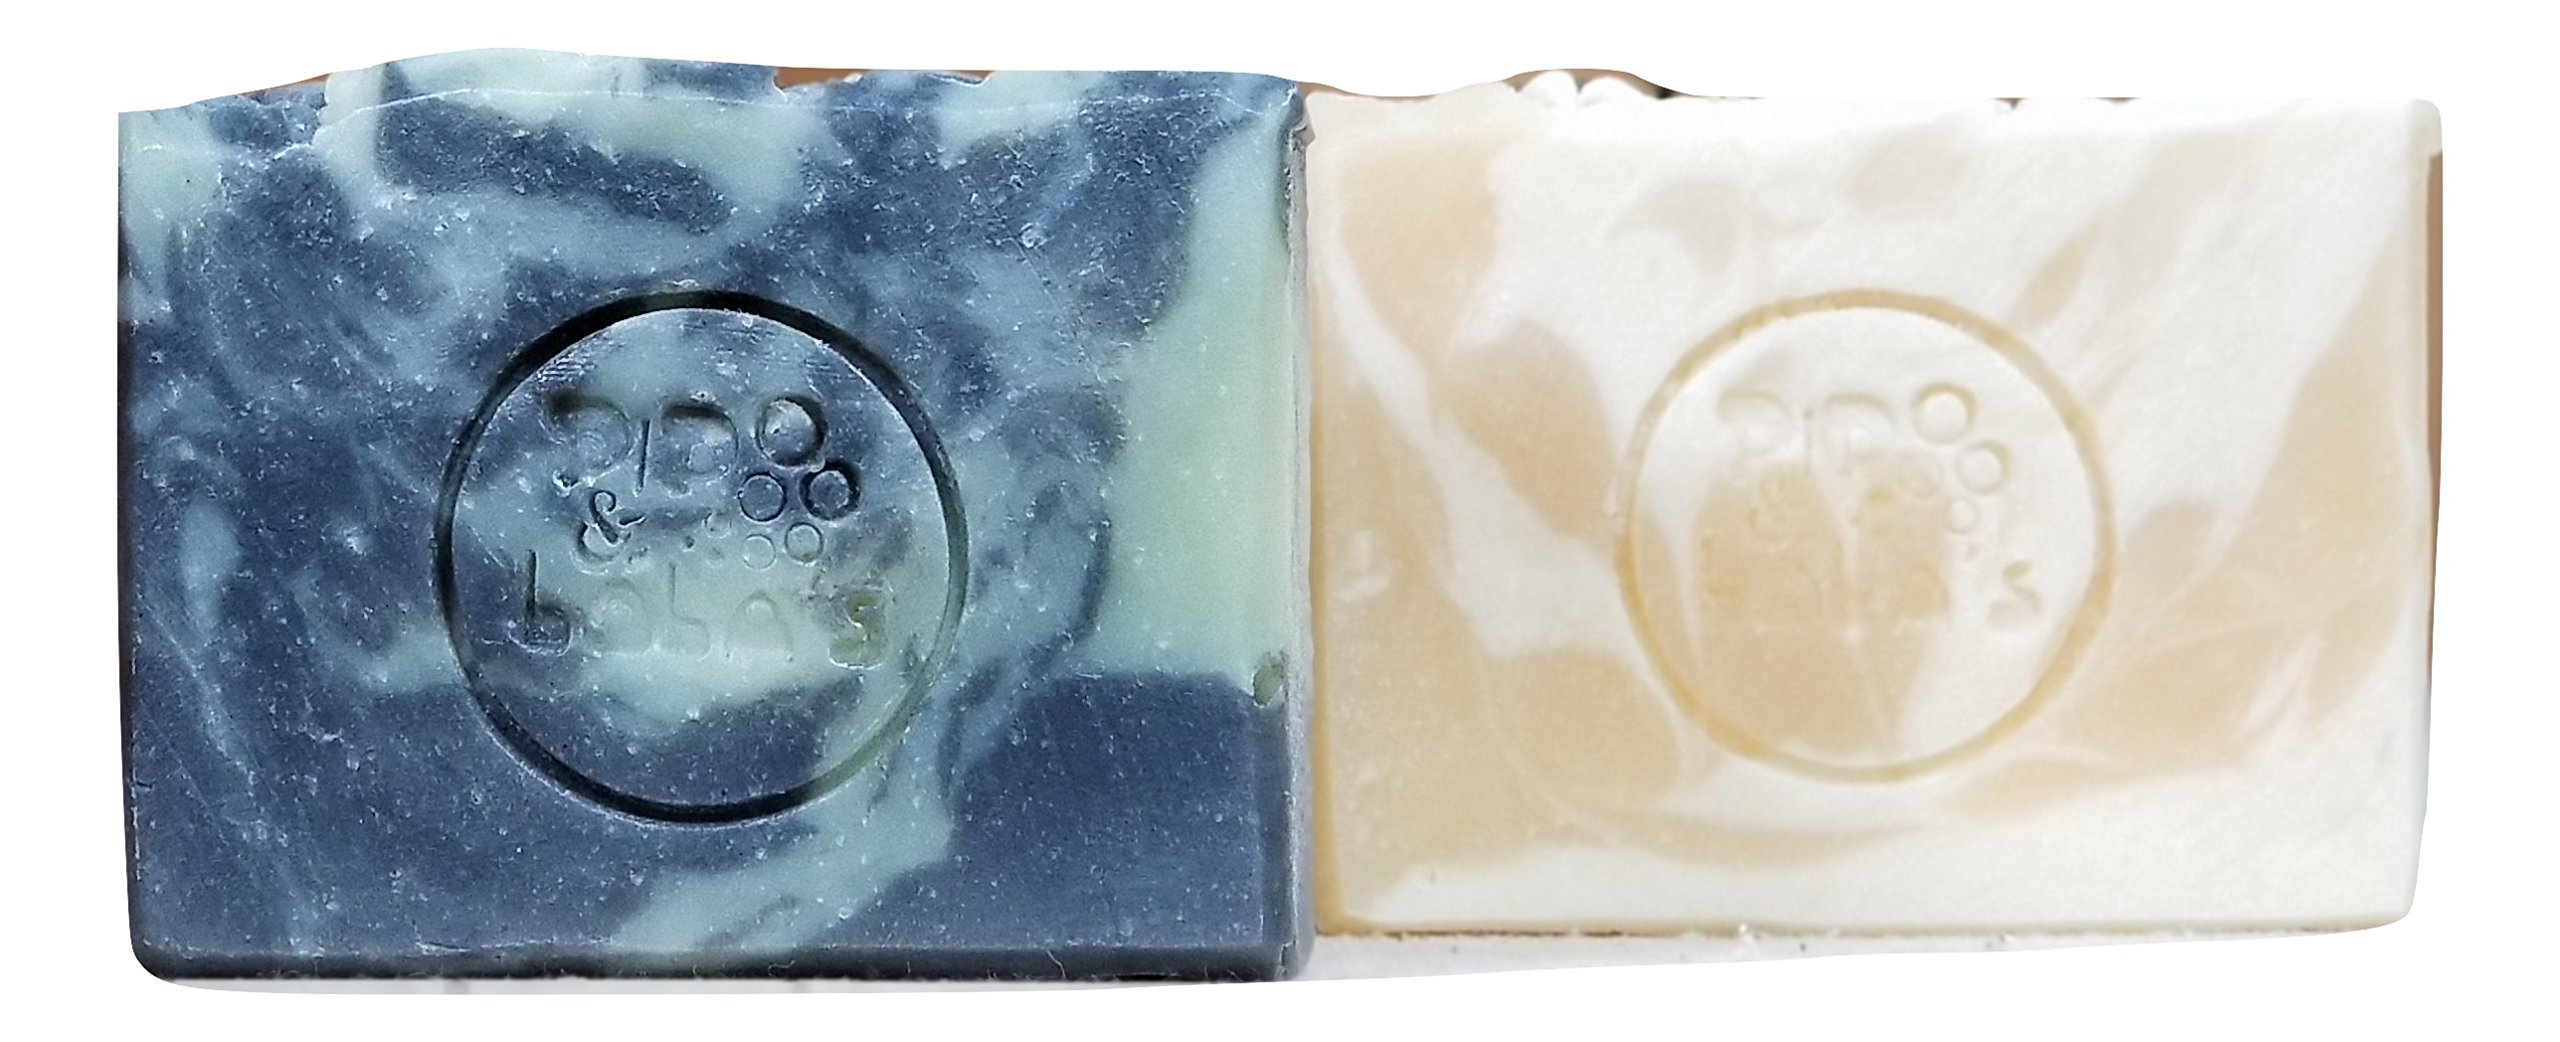 Othello - Desdemona Lovers Pack - Amber & Mahogany/Peach scented two pack handmade vegetarian soaps - Soap Goddess Loves Shakespeare Soap